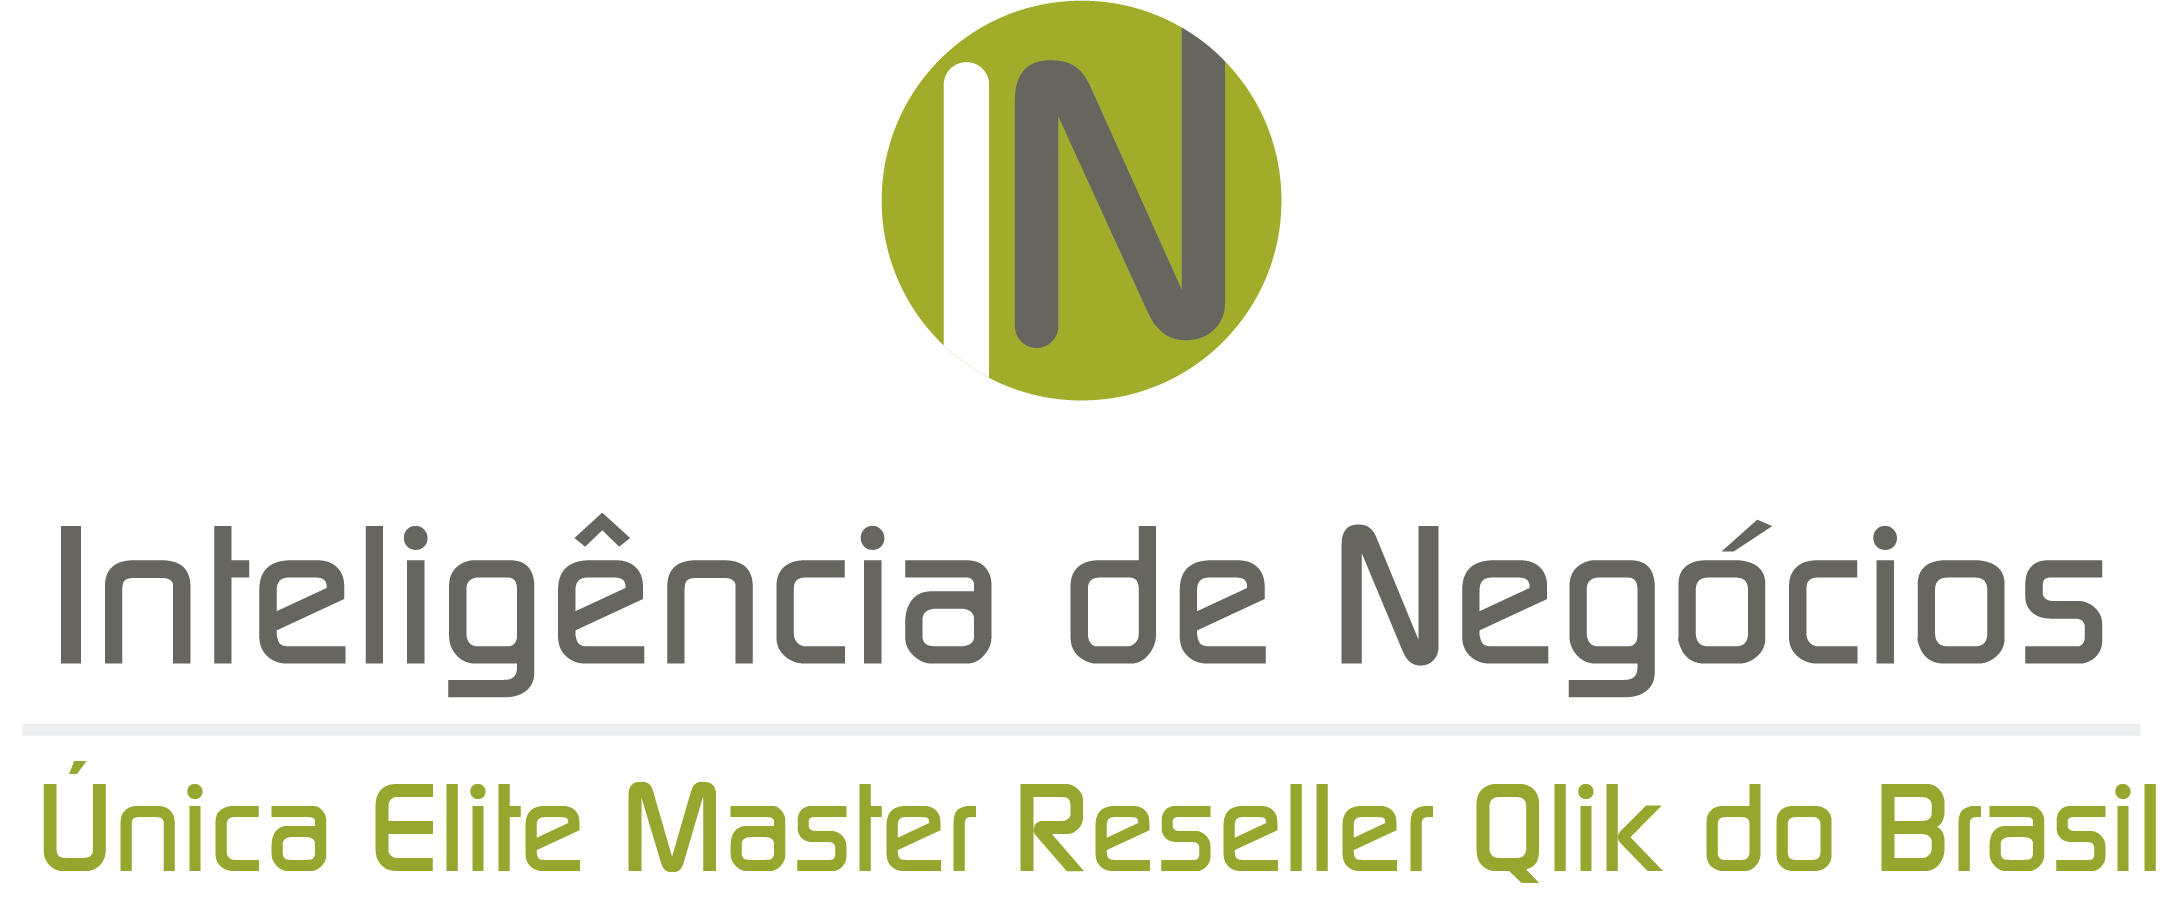 IN unica elite reseller do brasil